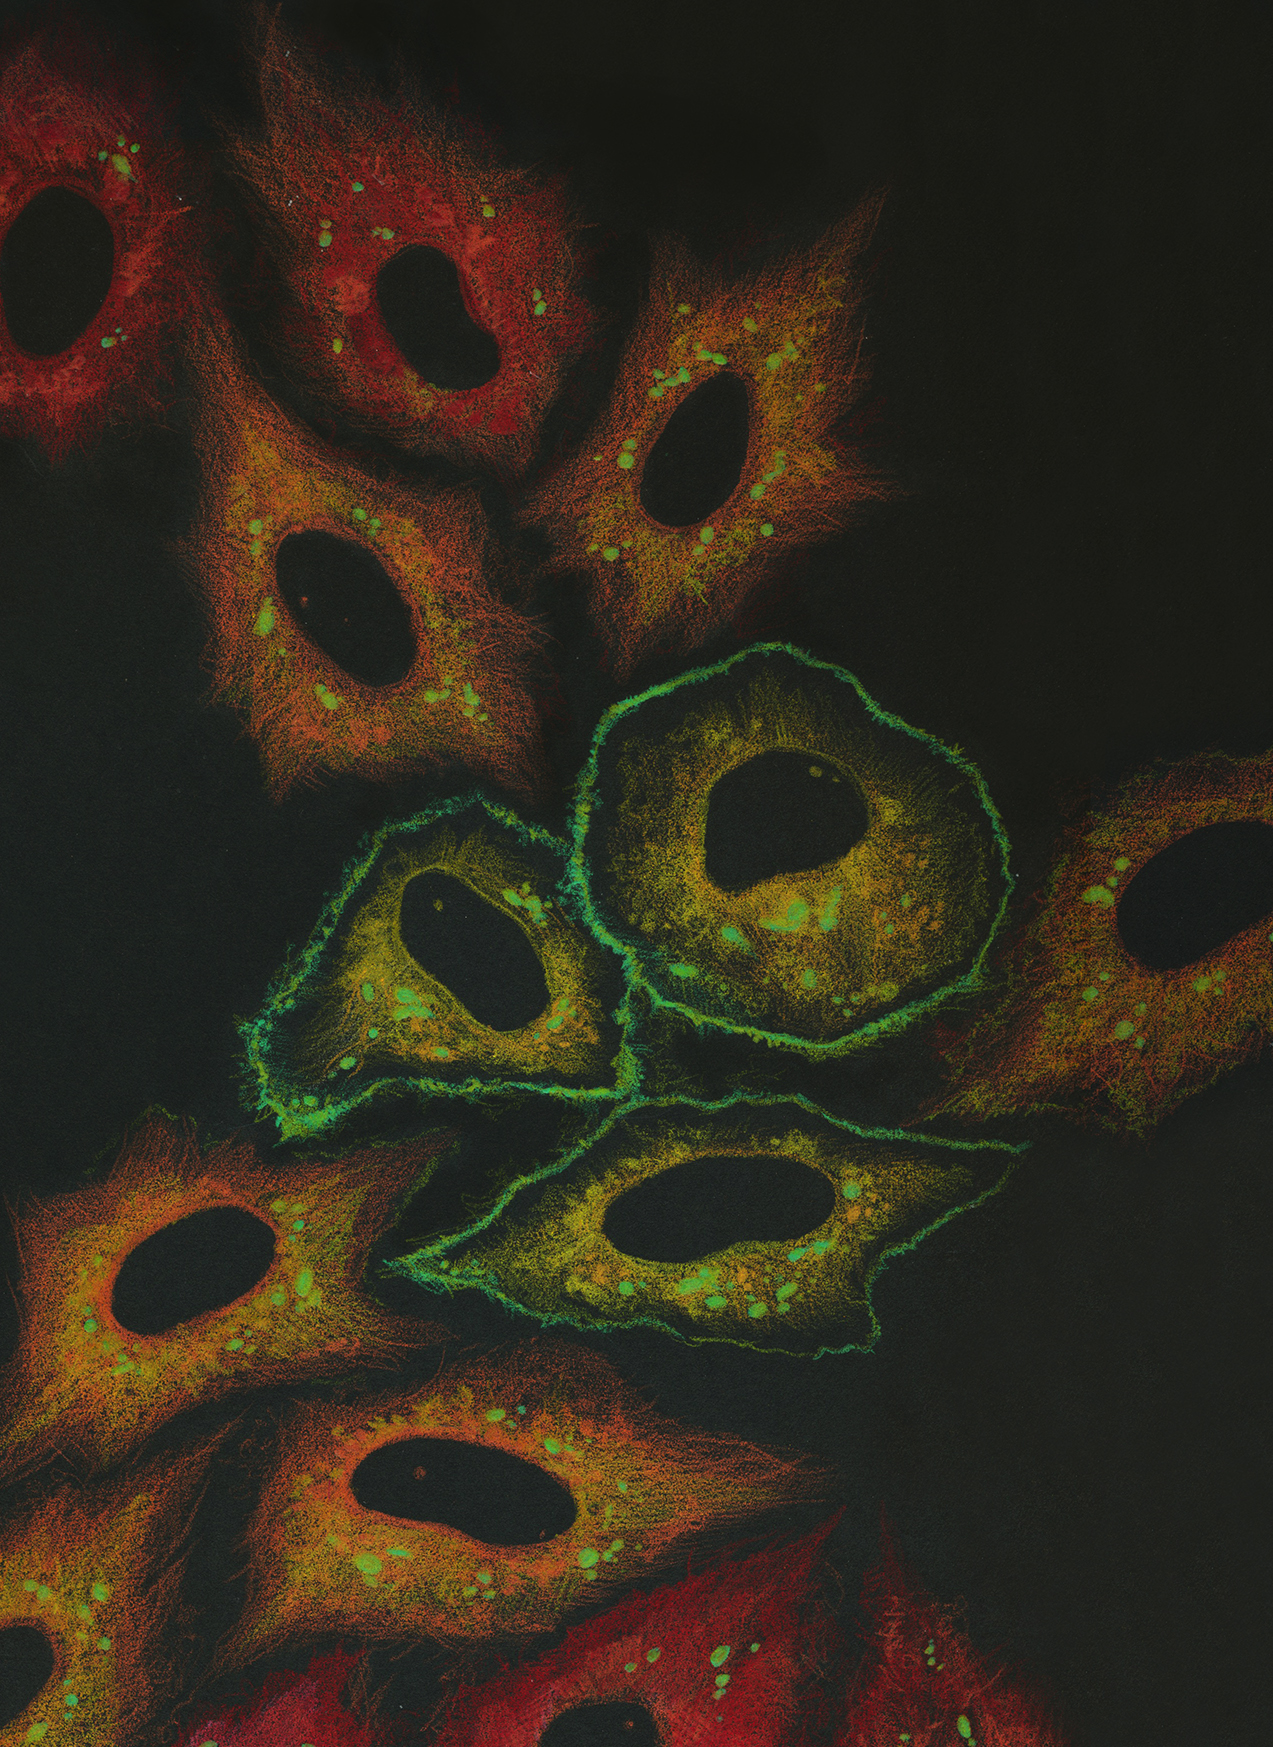 - Exploring the interactions between tumor suppressor genes, metabolism, and cell death in cancer